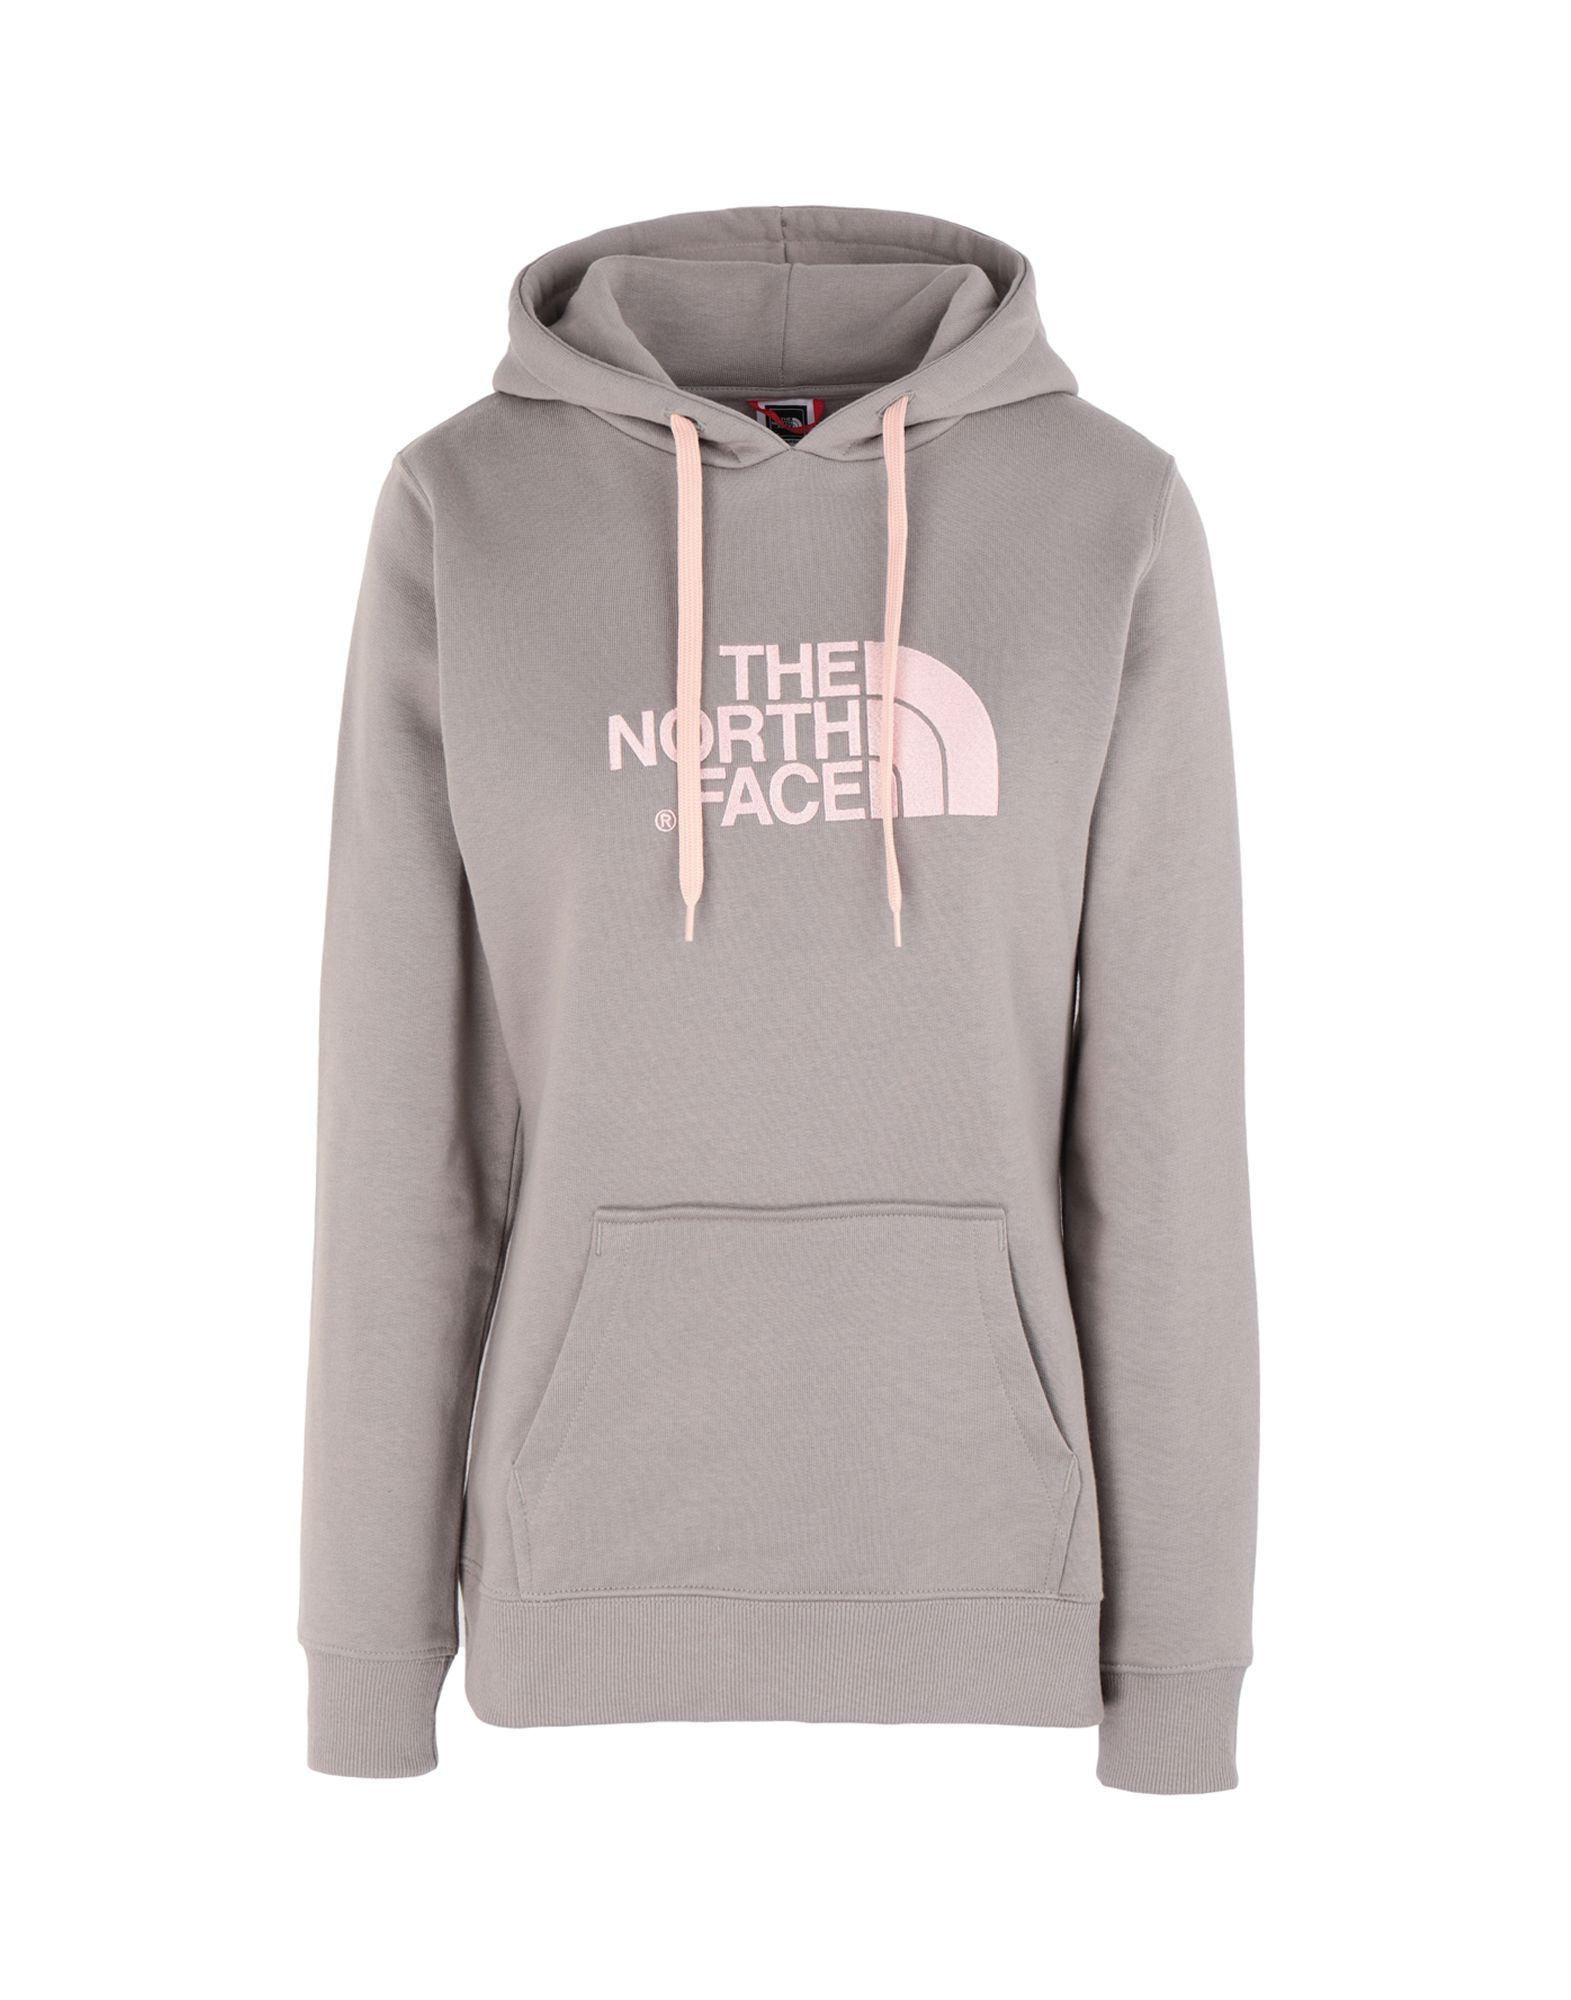 30dff737b56 The North Face Femme - The North Face Sport - YOOX